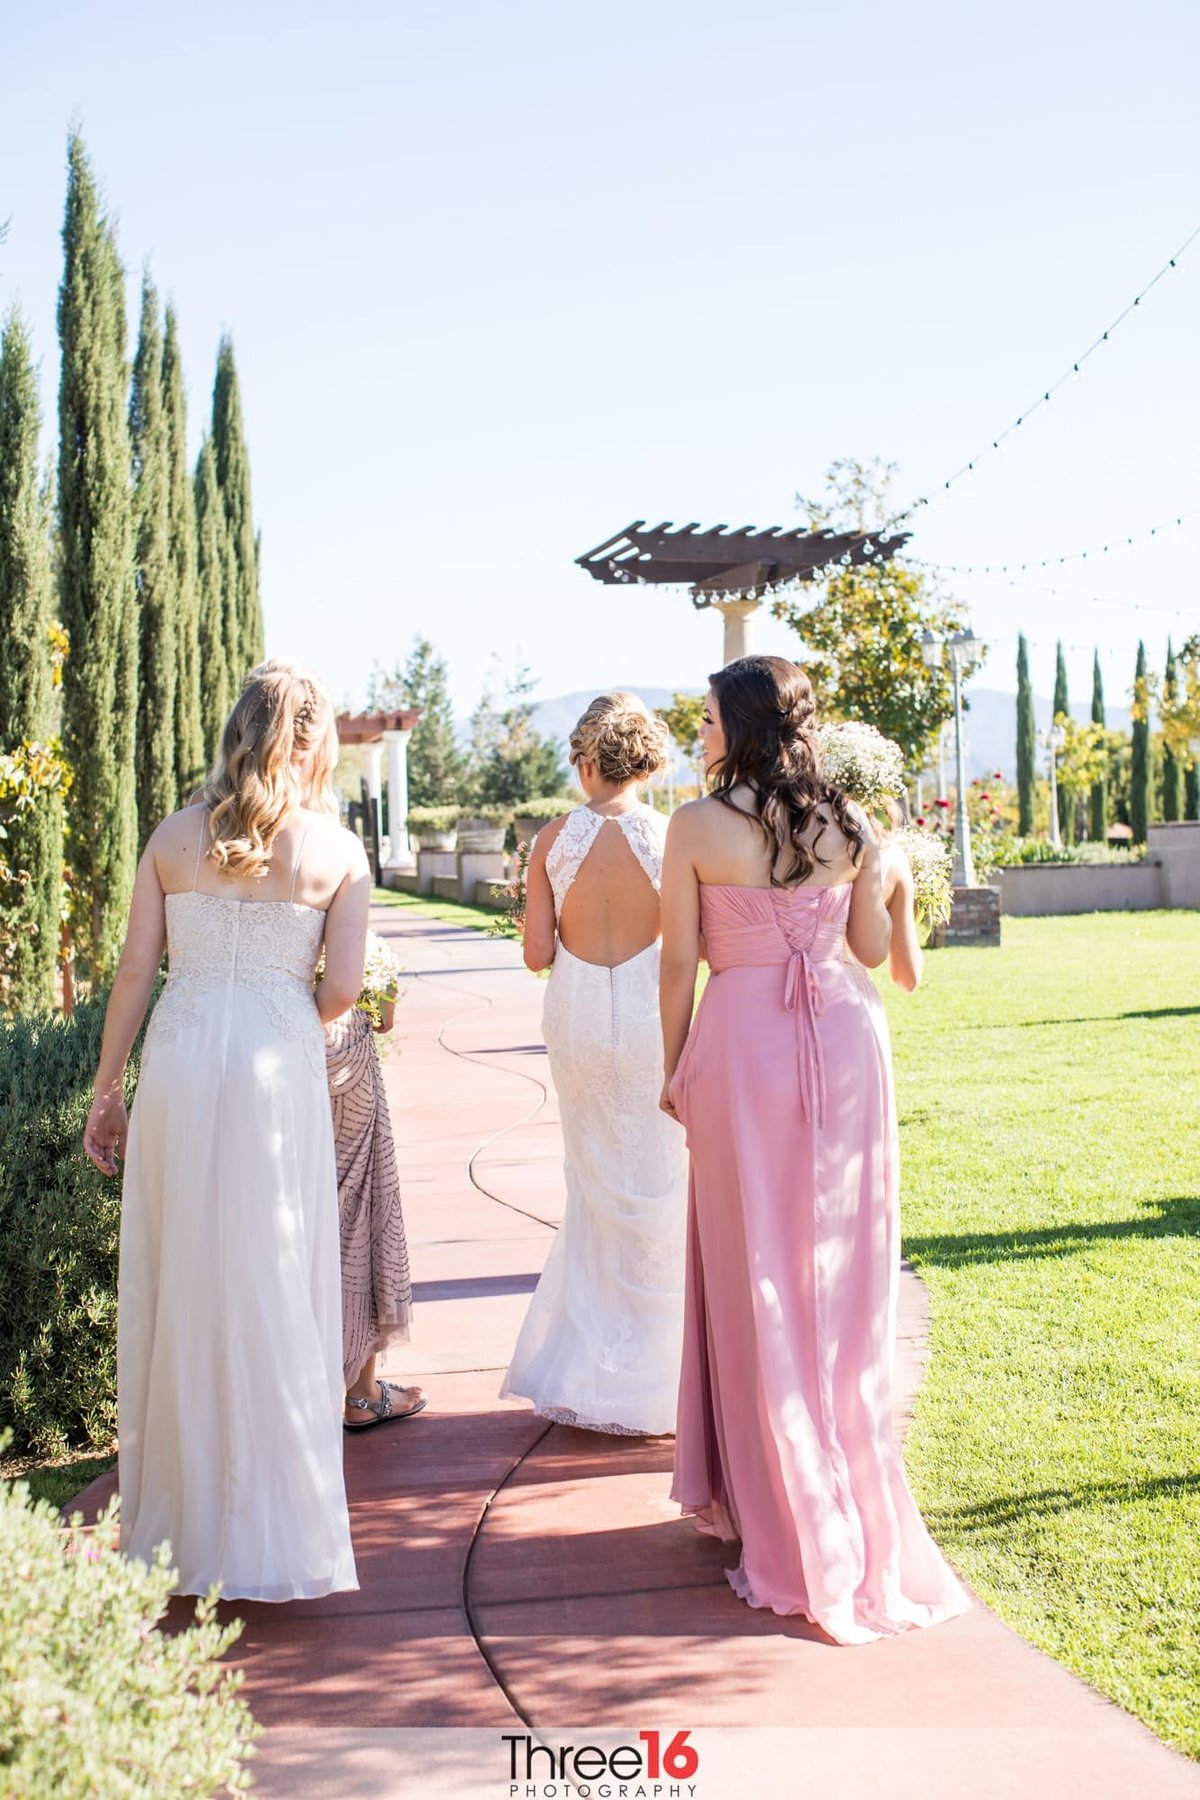 Bride and her Bridesmaids head to the ceremony